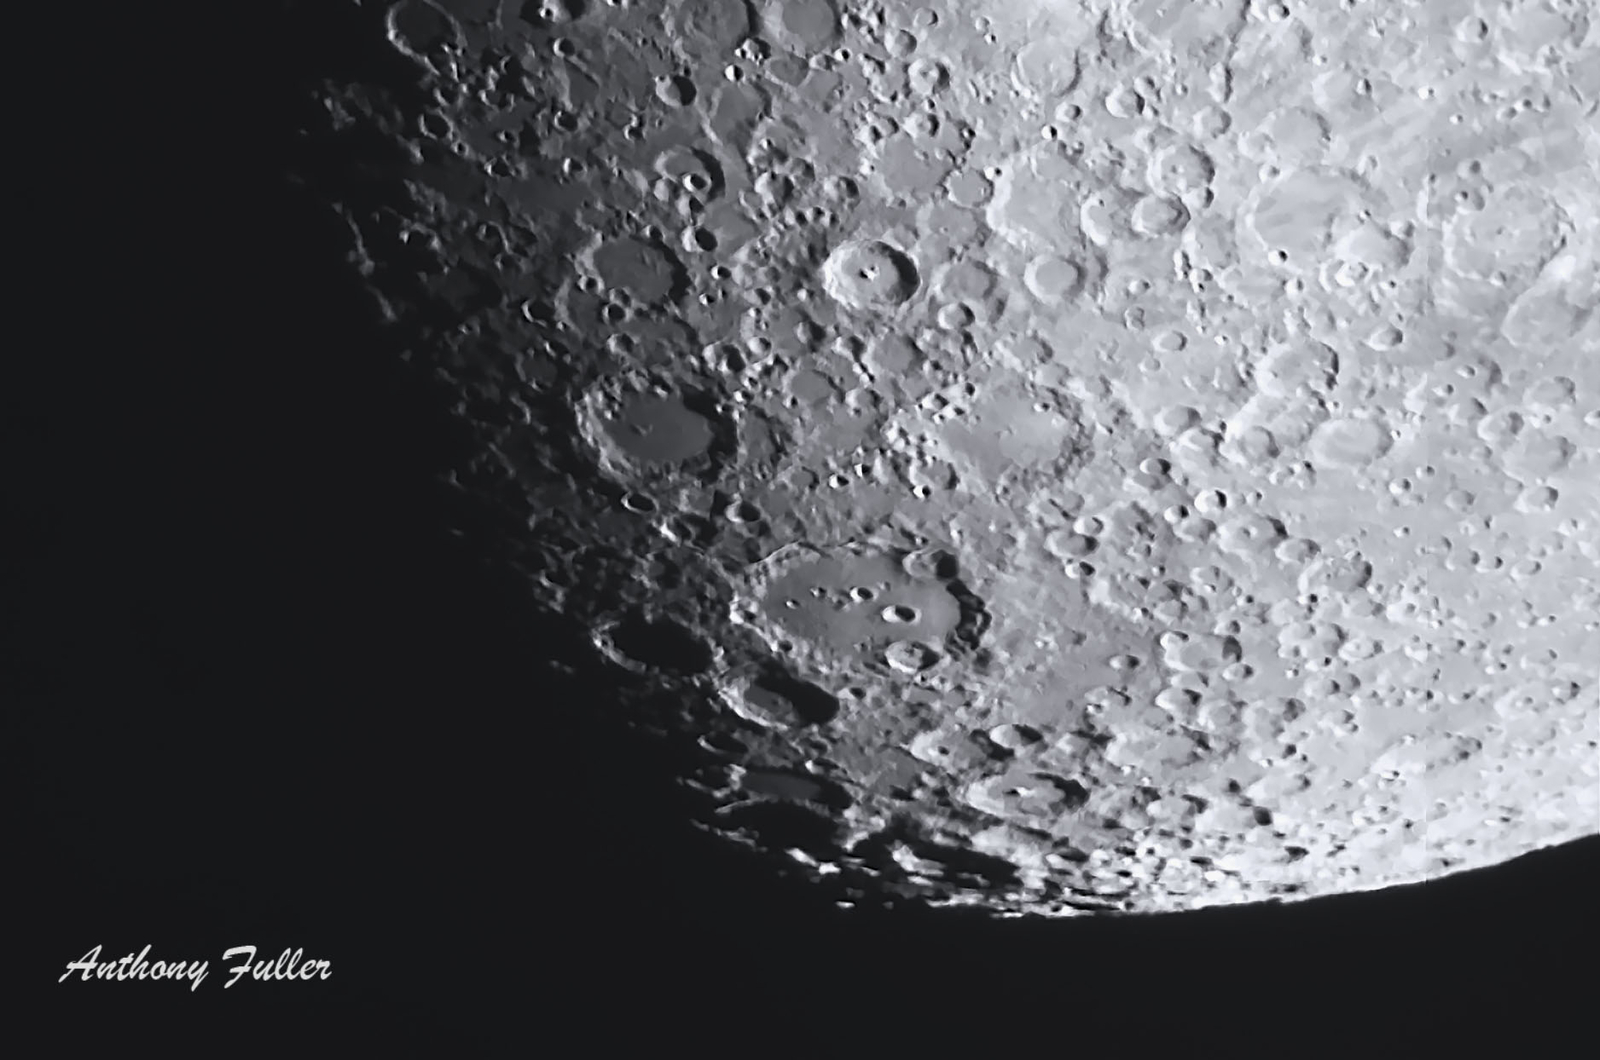 moon_surface5e.jpg